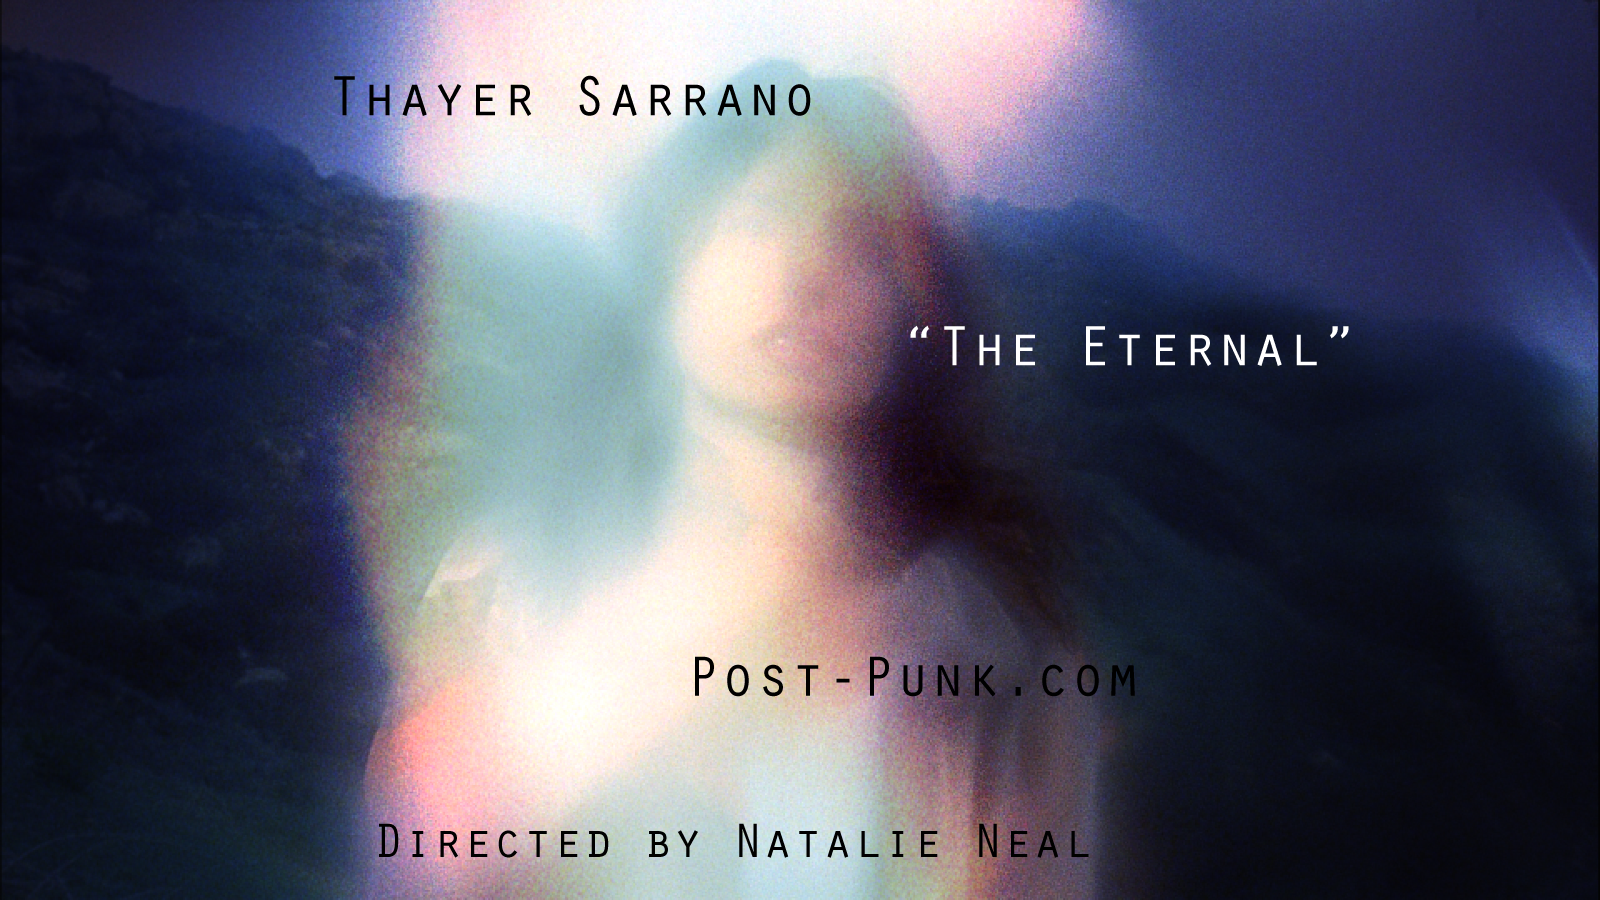 Thayer Sarrano - The Eternal - Post-Punk.com - Natalie Neal (Director)